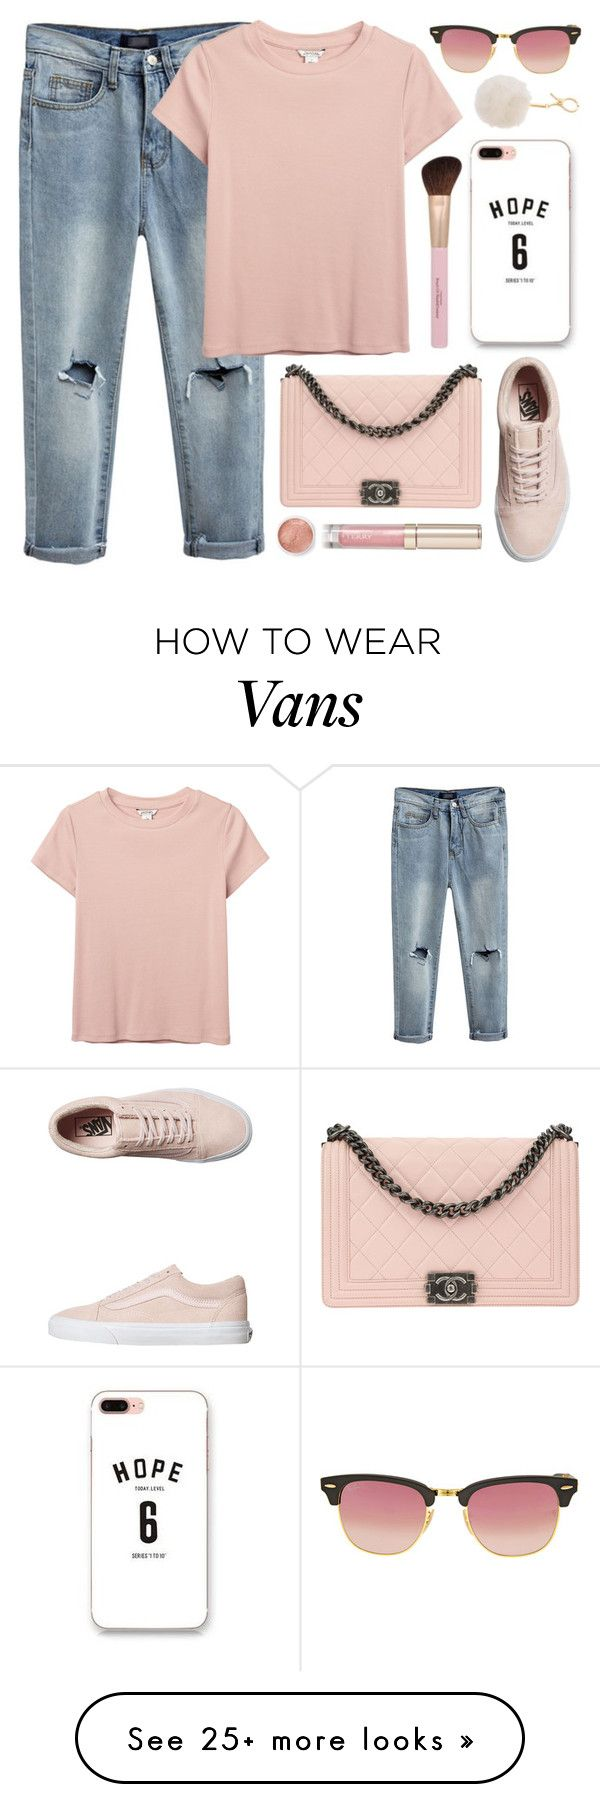 """""""Sunday Morning"""" by monmondefou on Polyvore featuring Sugoi, Monki, Ray-Ban, Chanel, Vans, By Terry, Terre Mère and Pink"""